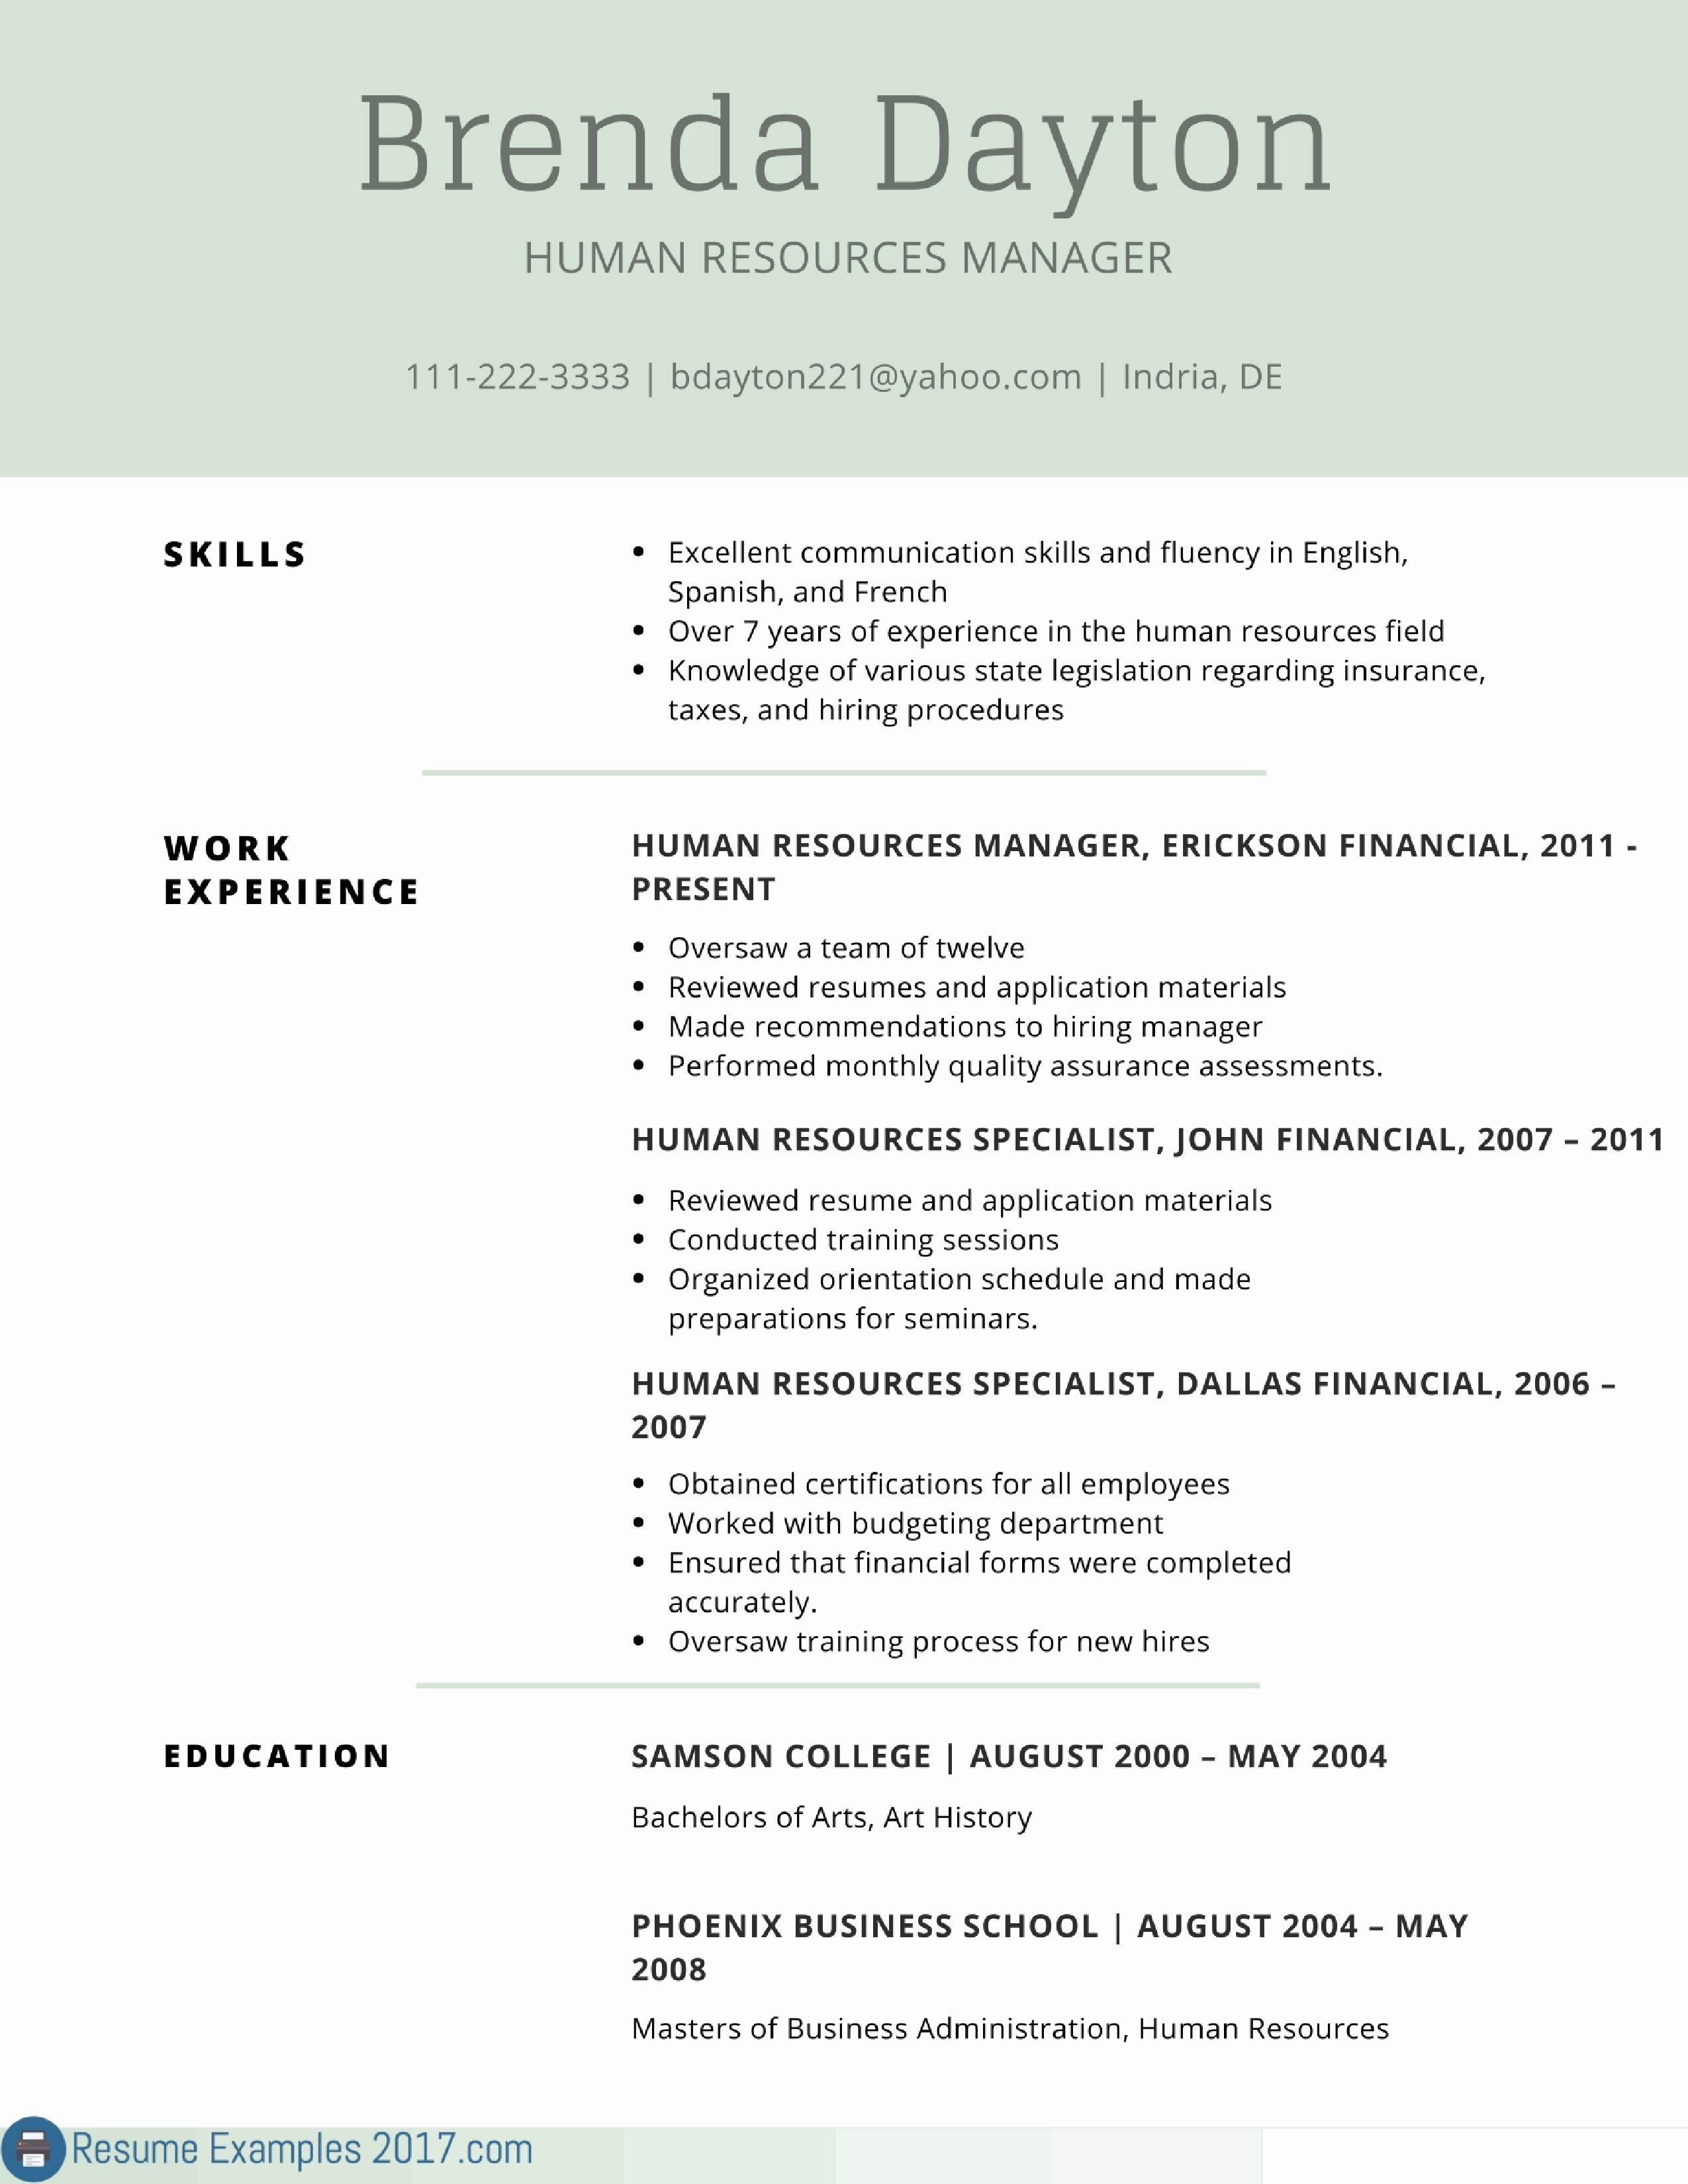 Retail Resume Template Free - Retail Resume Template Awesome What is Resume Luxury Fresh New